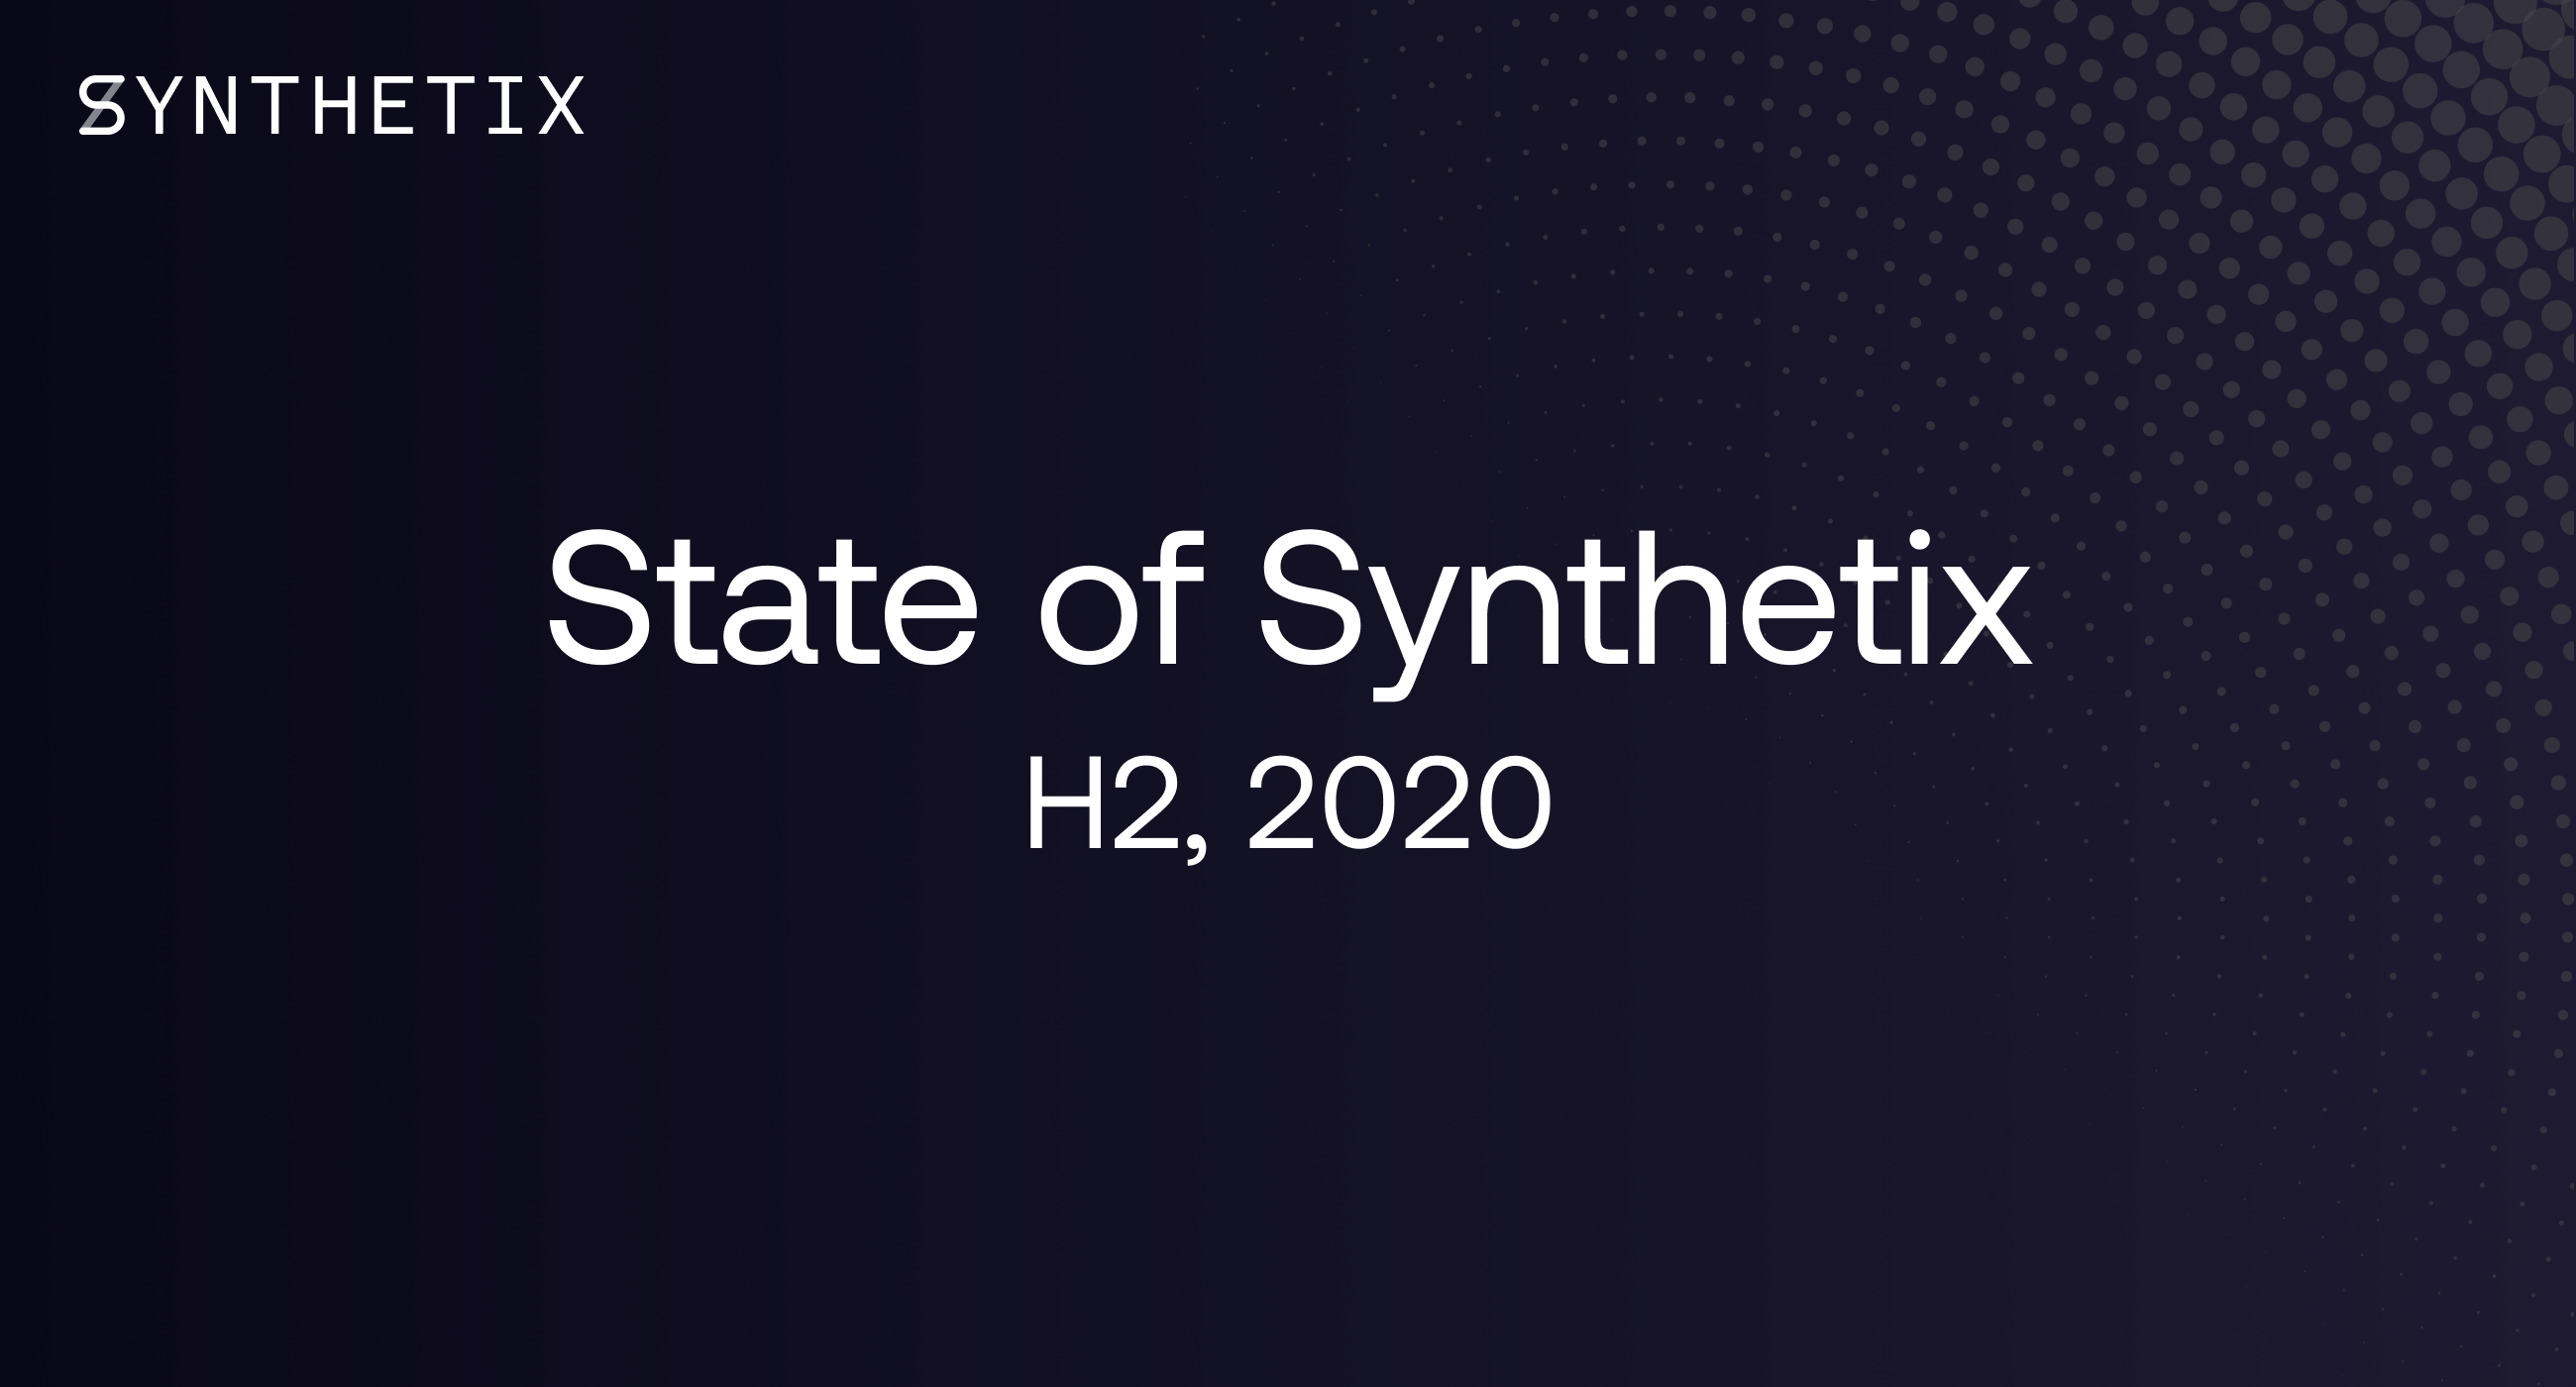 State of Synthetix H2 2020